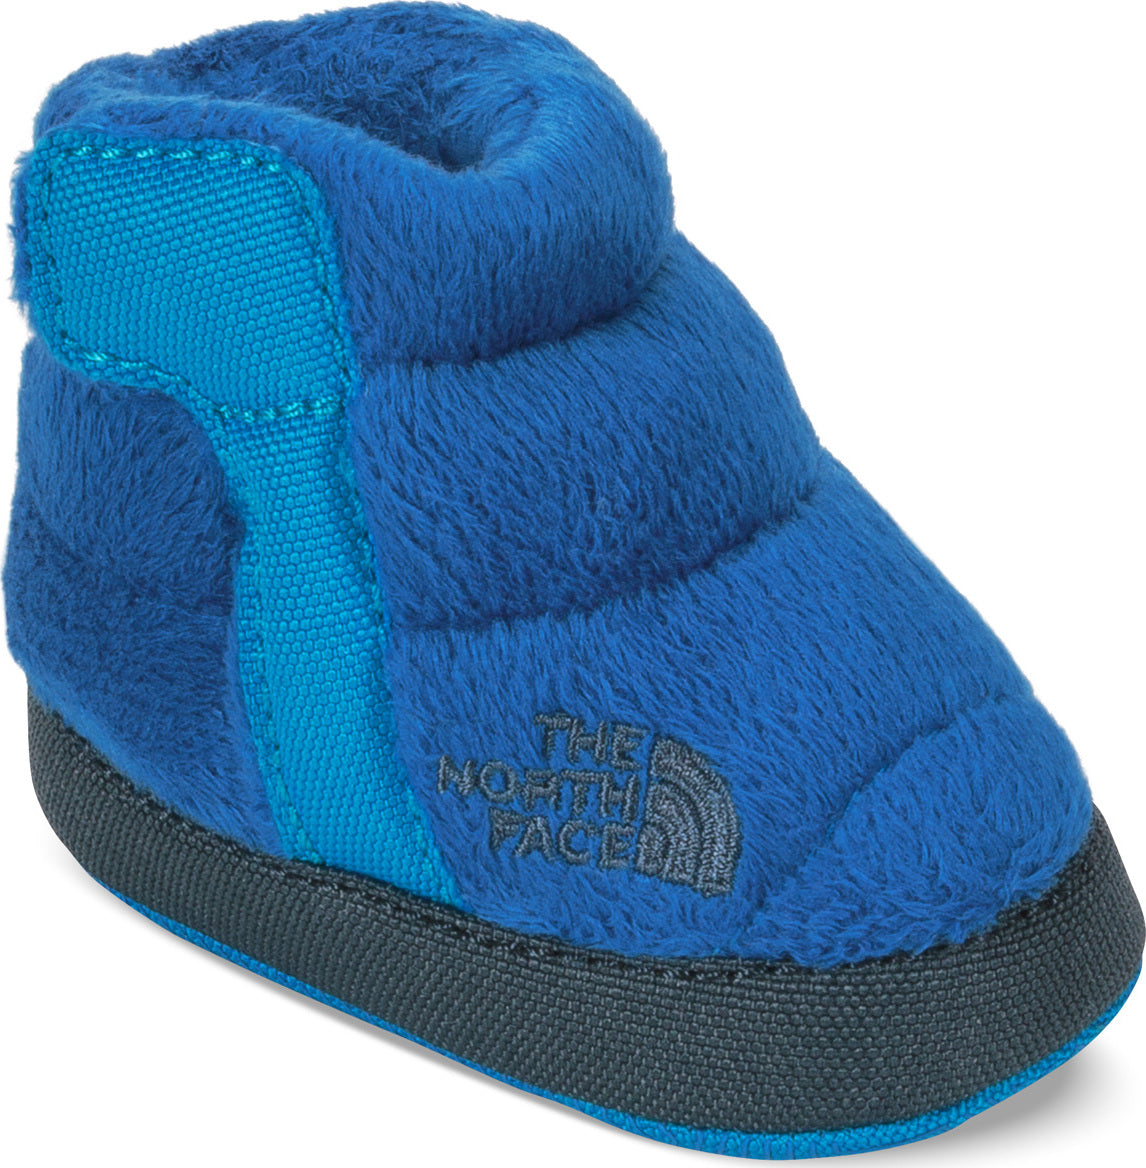 9f3819d85 The North Face Boy's NSE Infant Fleece Bootie